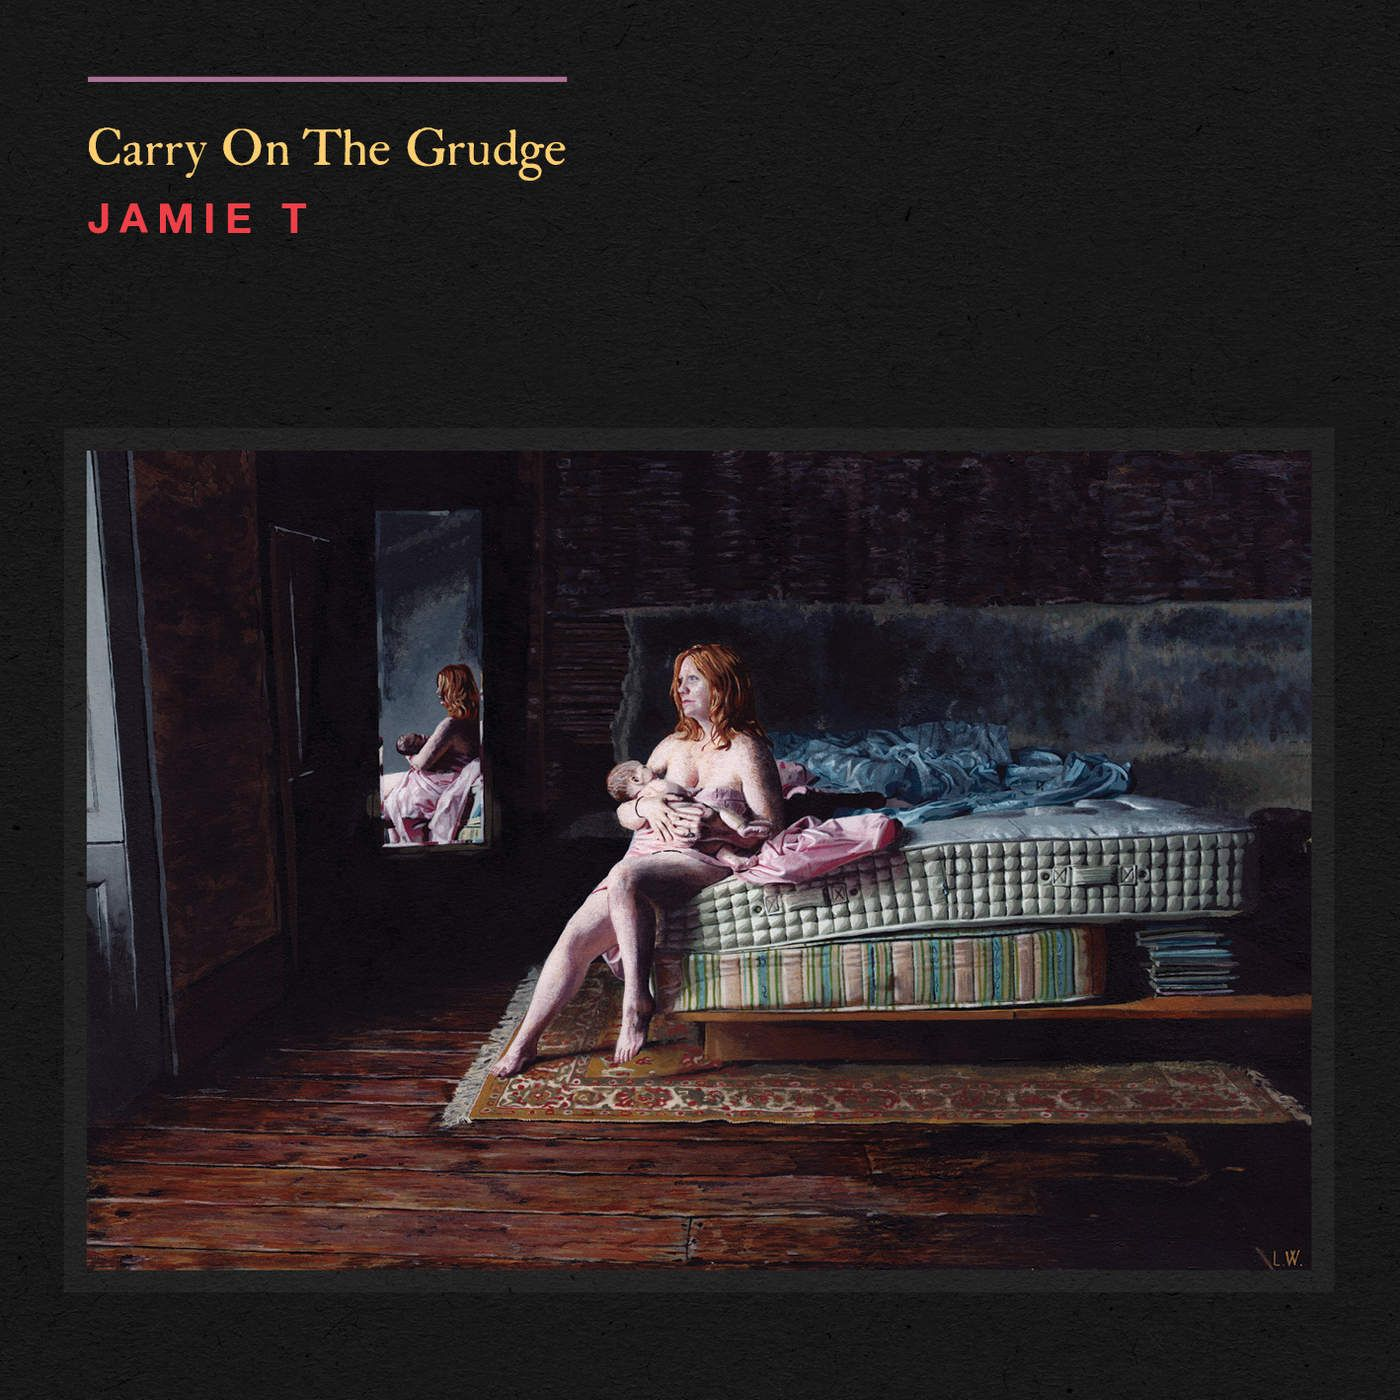 Jamie T - Carry On The Grudge album cover